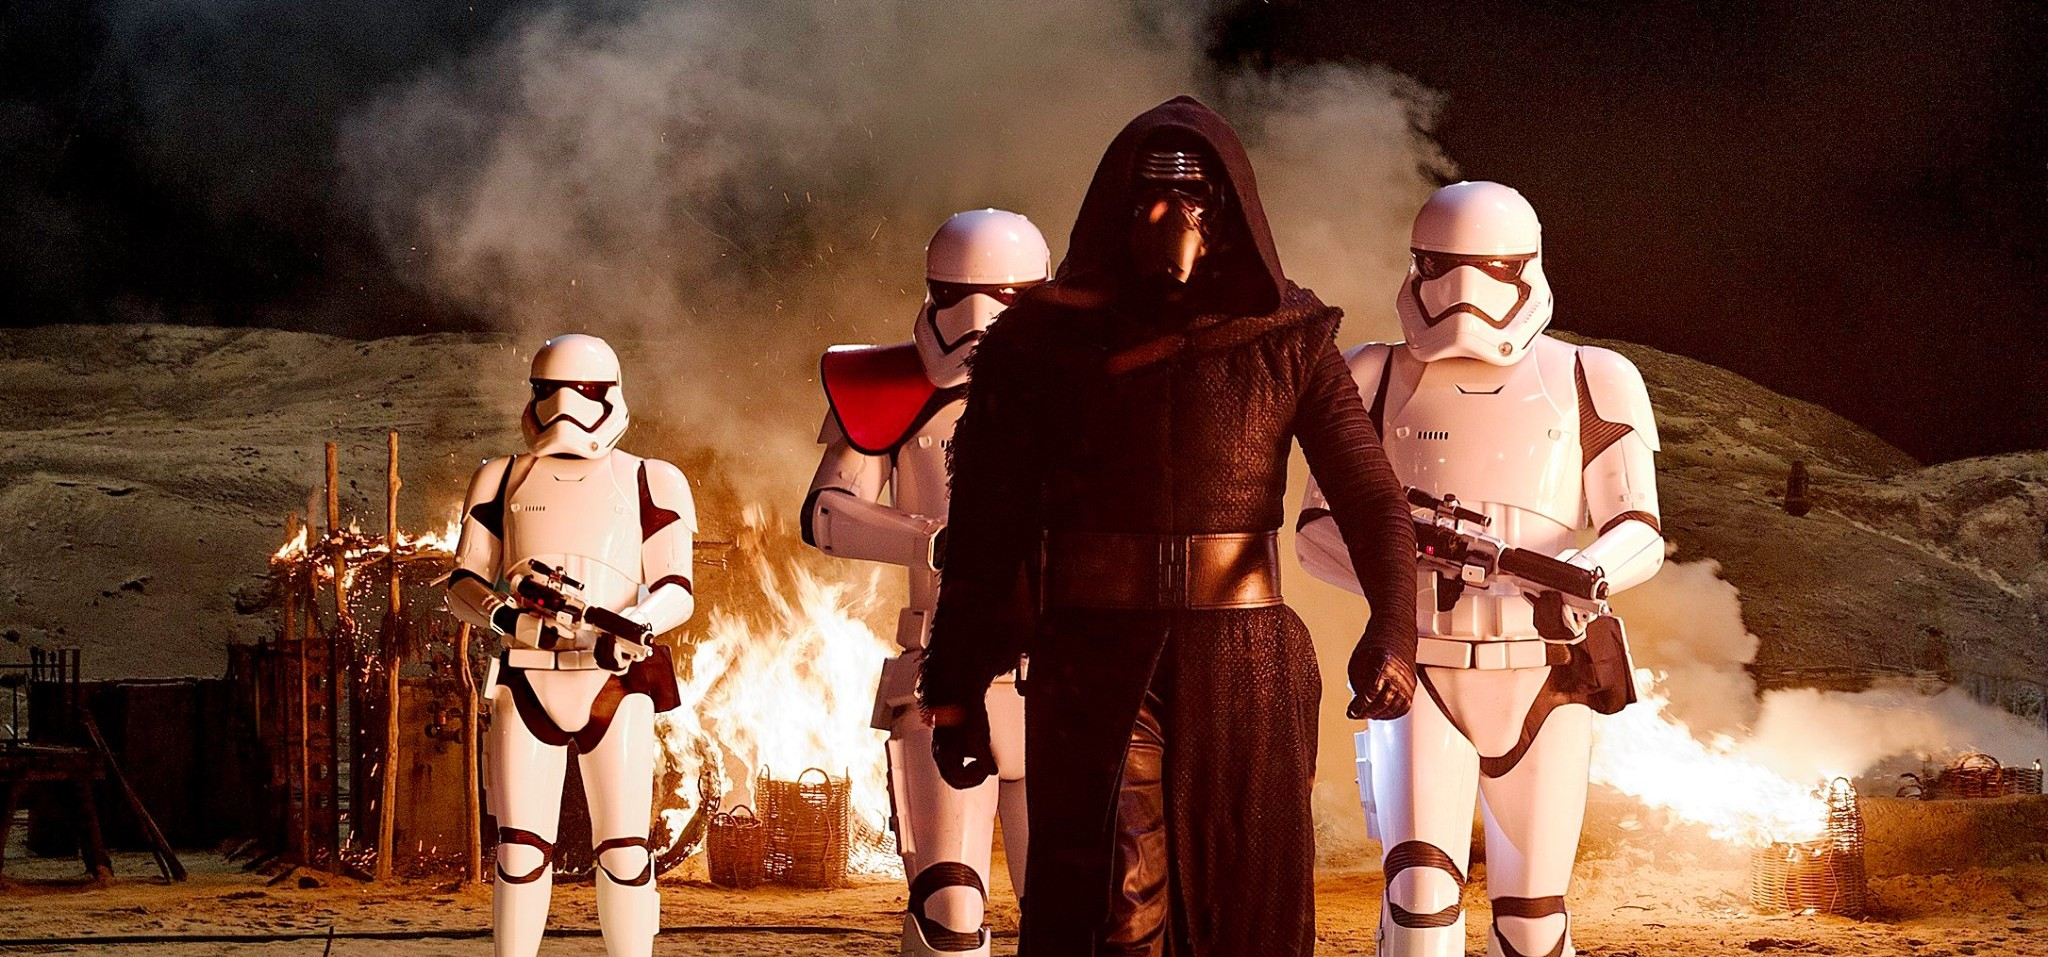 the_force_awakens_1